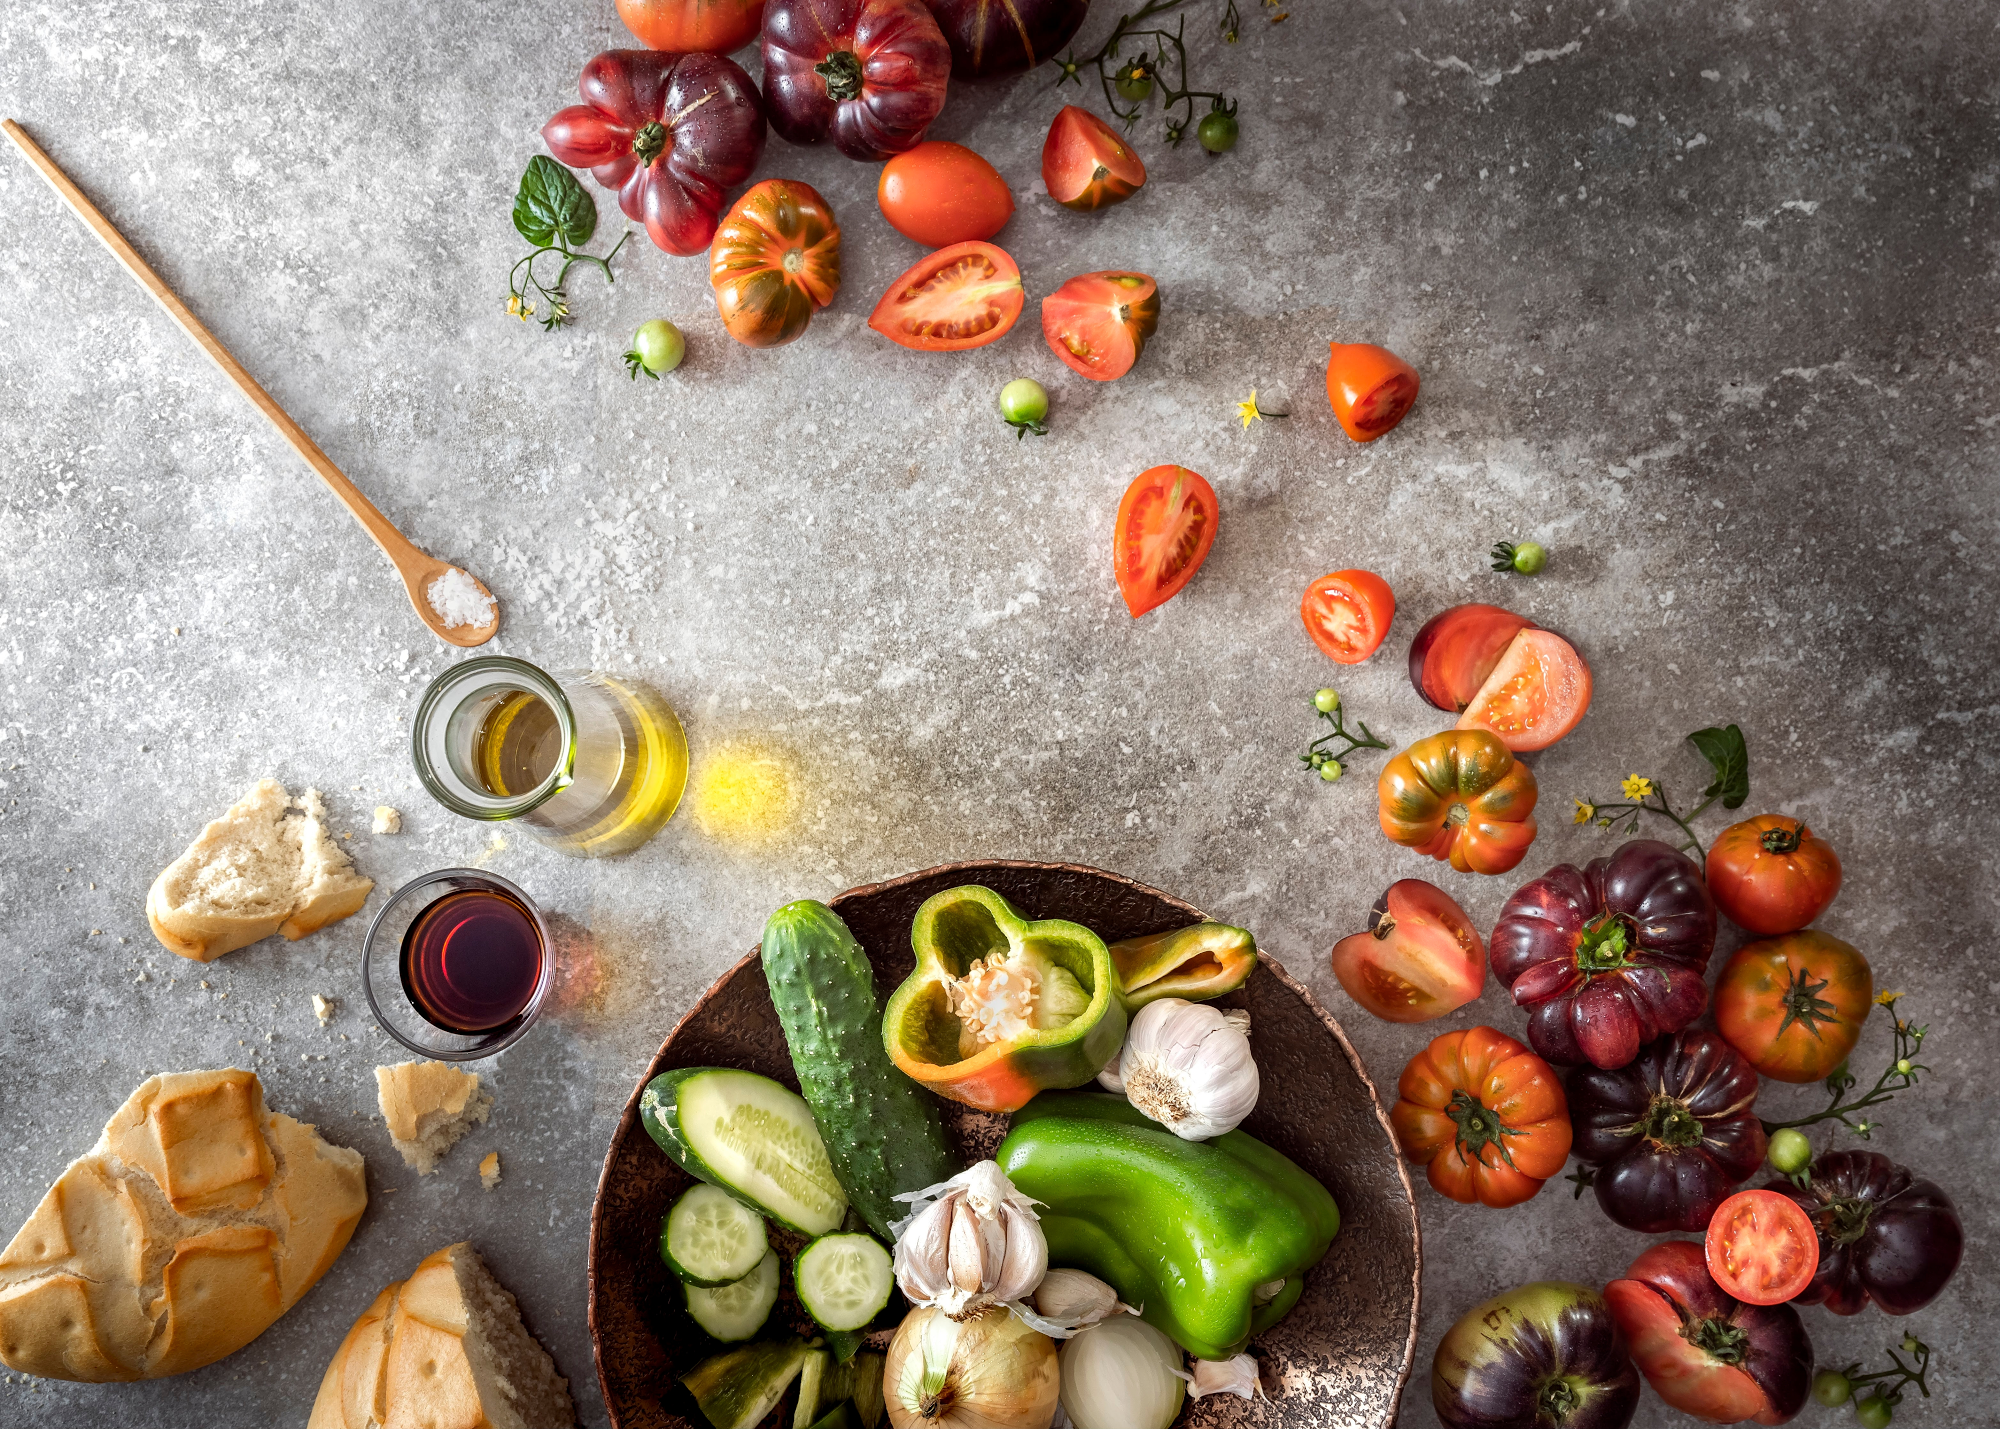 Get a taste of Spanish culinary history on Google Arts & Culture